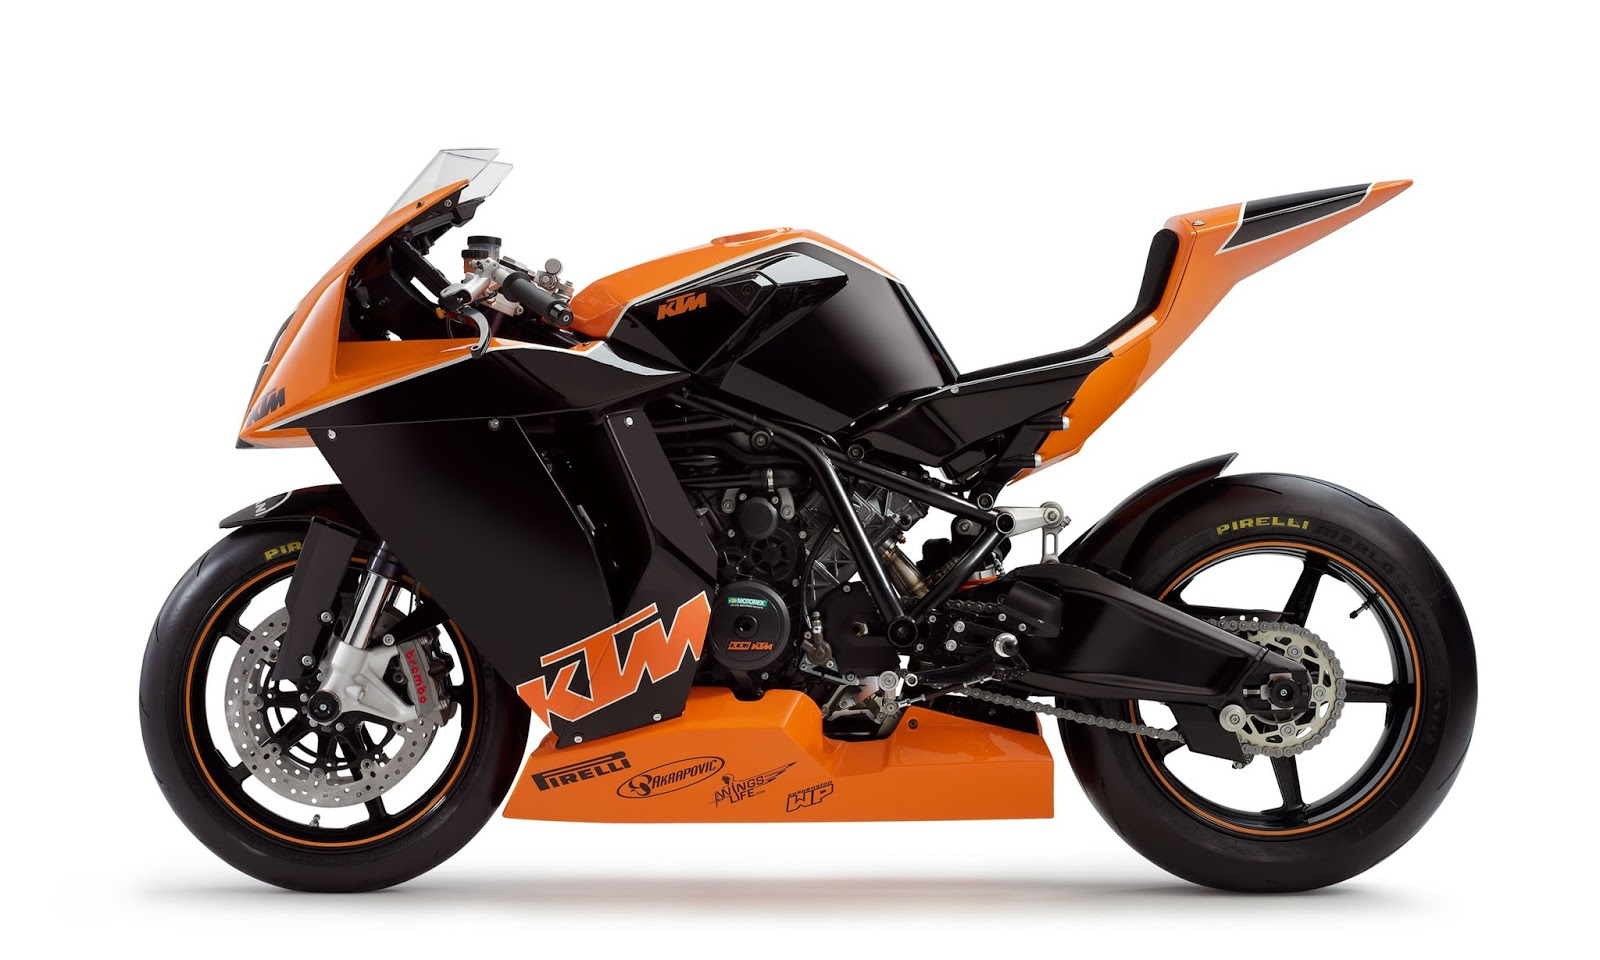 ktm bikes images 47 - photo #12